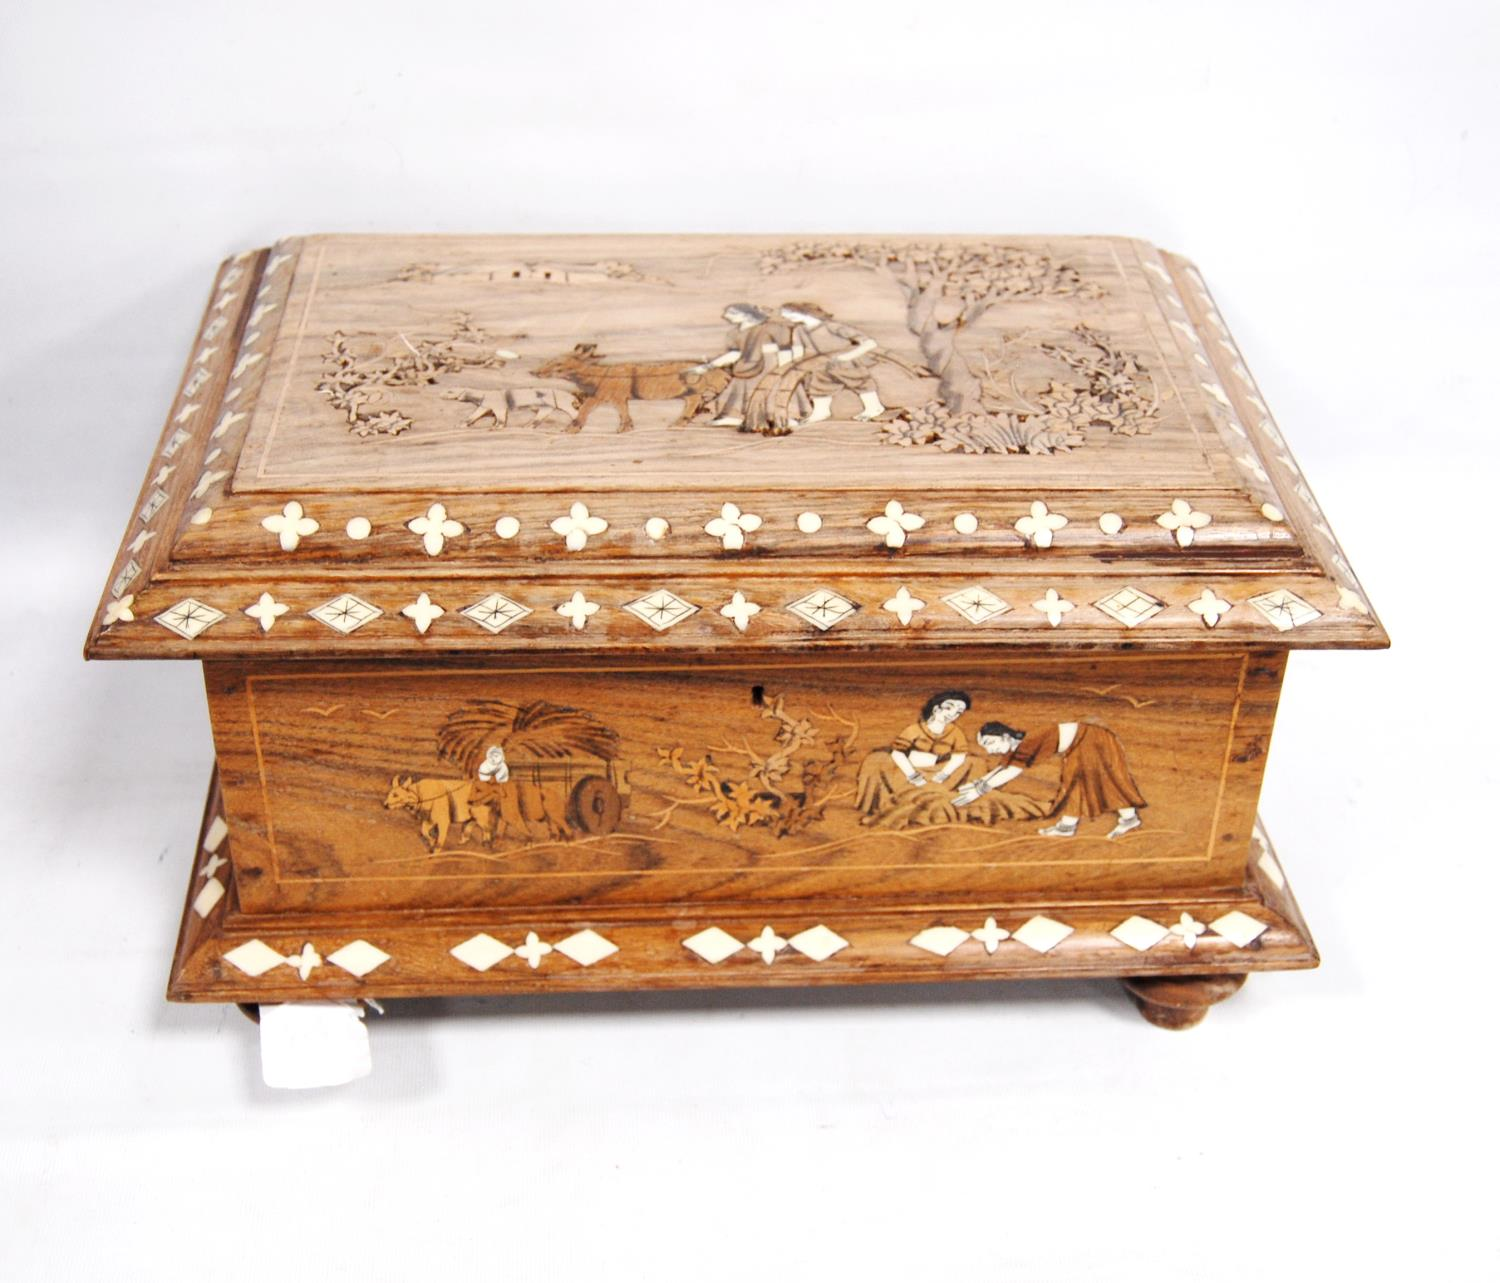 Inlaid rosewood casket-shaped box decorated with a rural scene, with hinged rectangular lid and